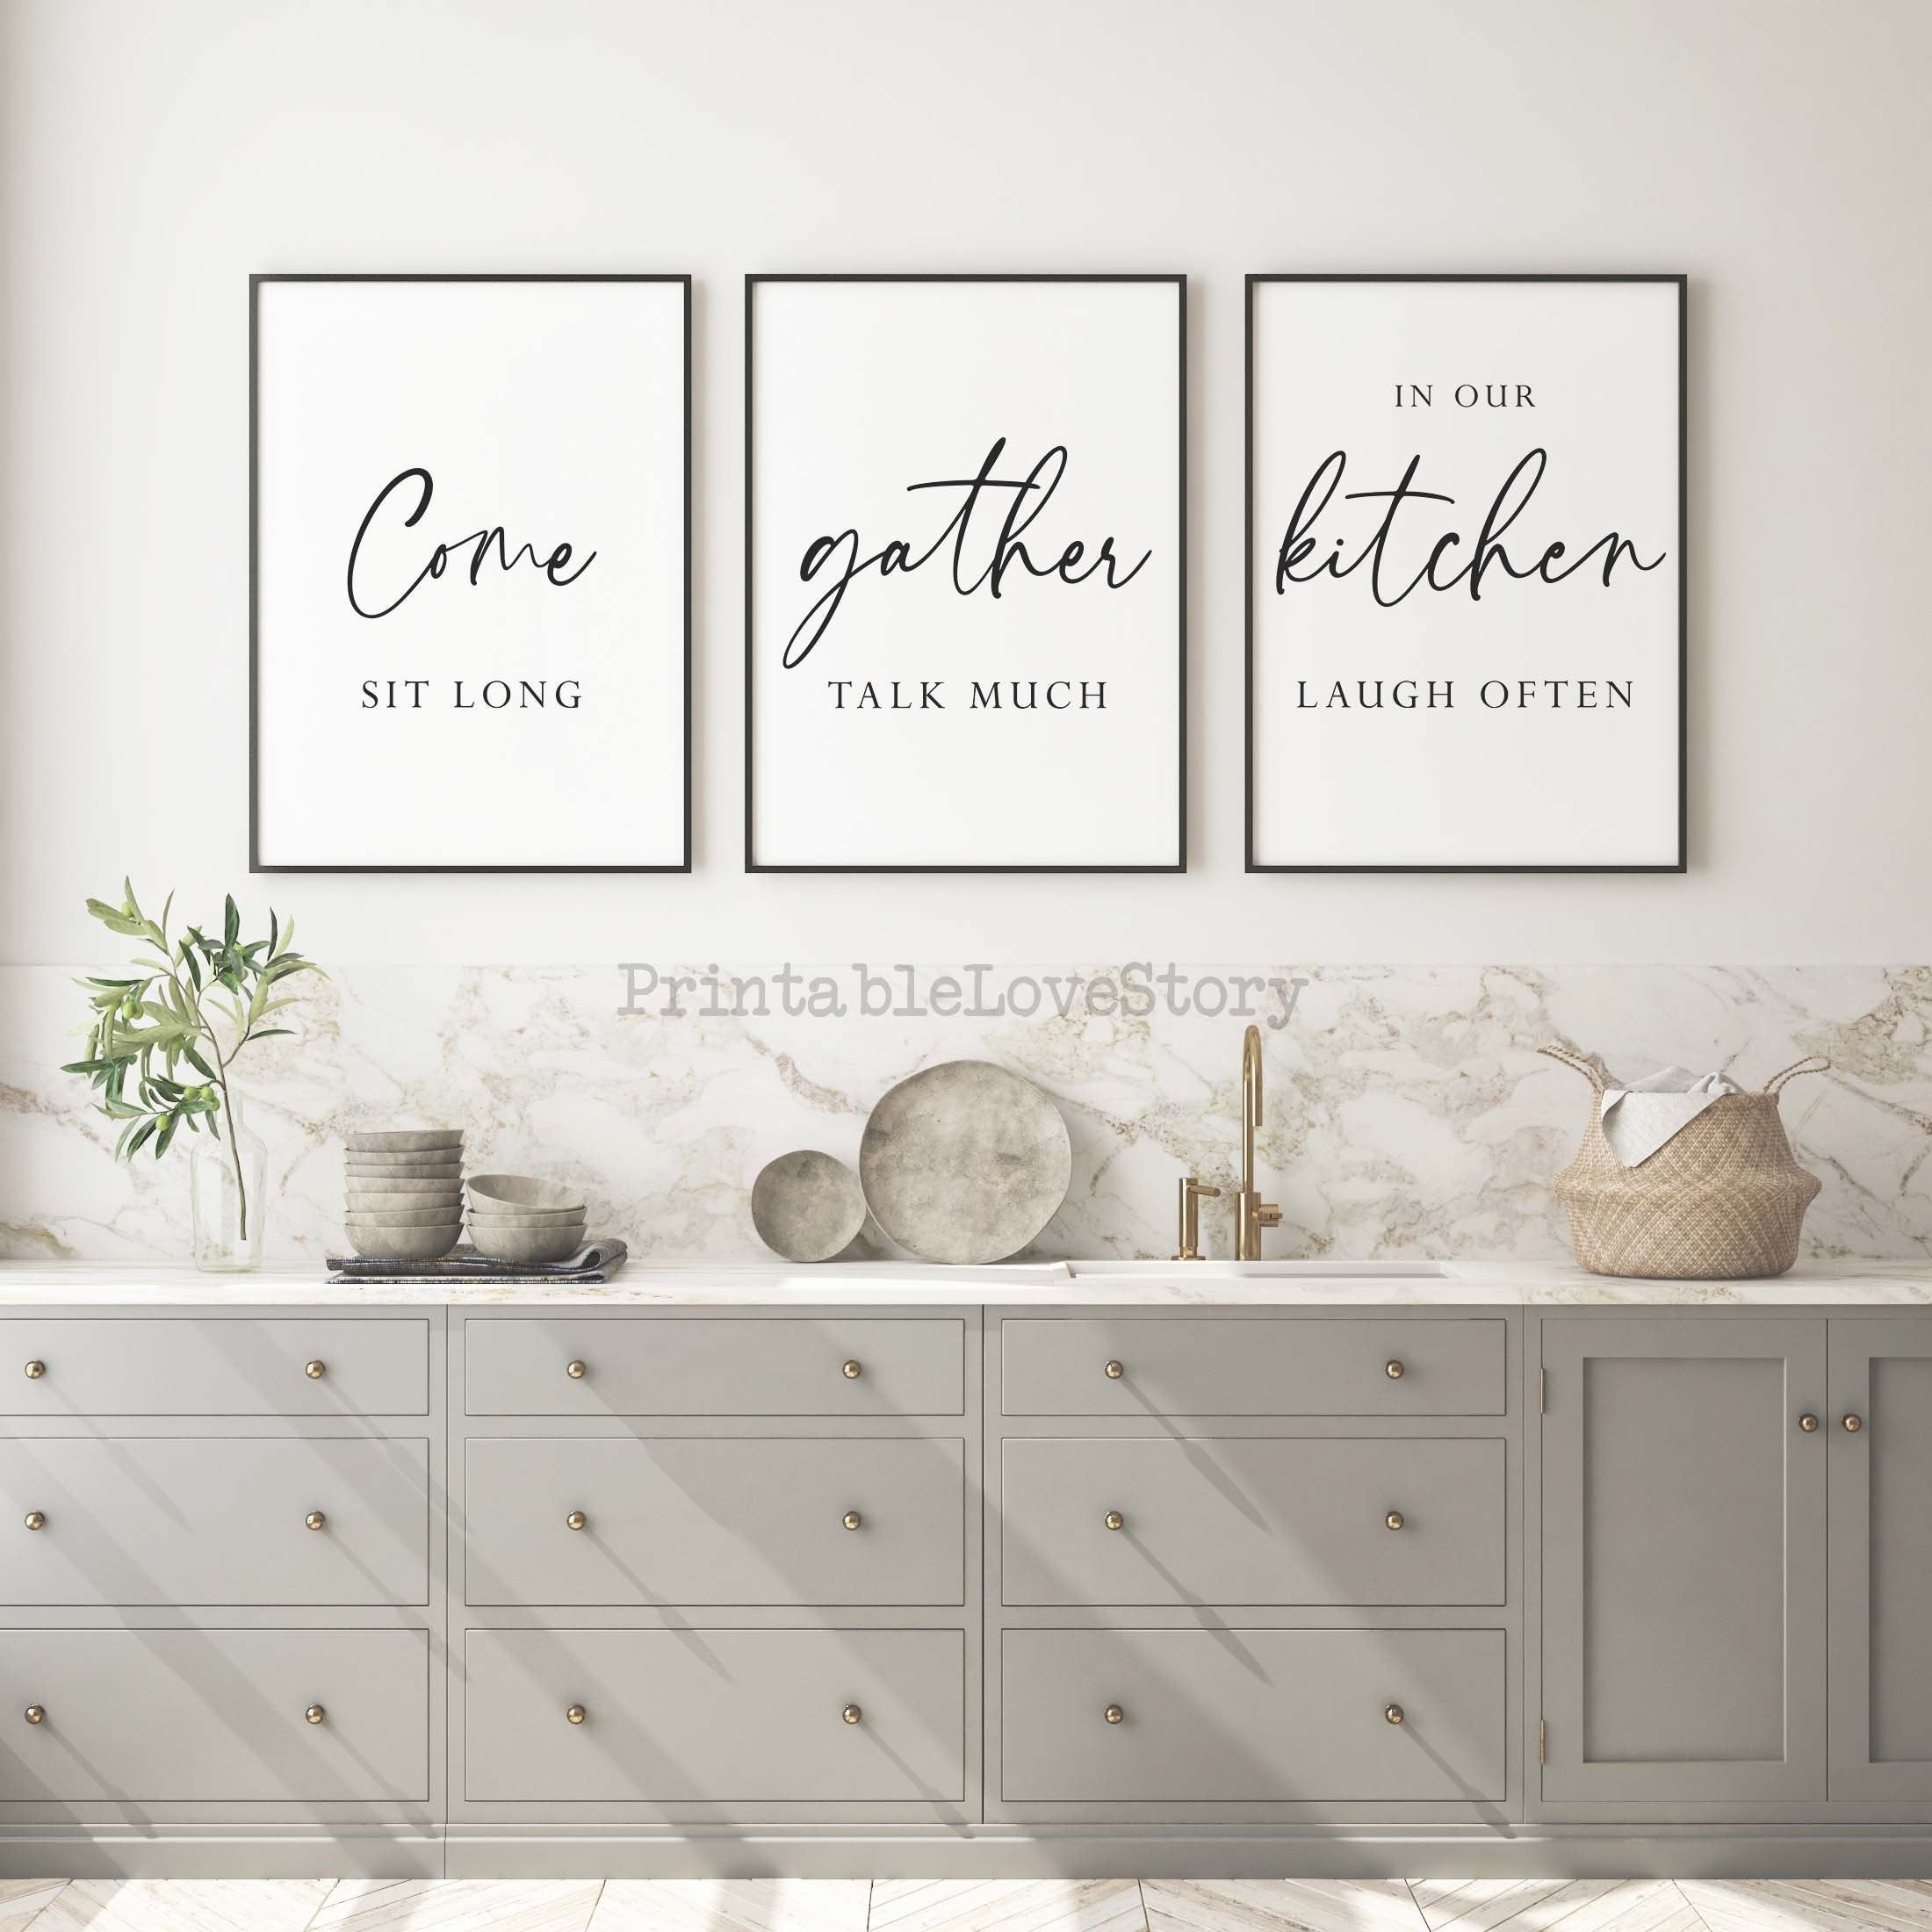 Kitchen Wall Decorkitchen Printable Decorkitchen Signscome Etsy Family Wall Art Family Wall Decor Thanksgiving Wall Decor